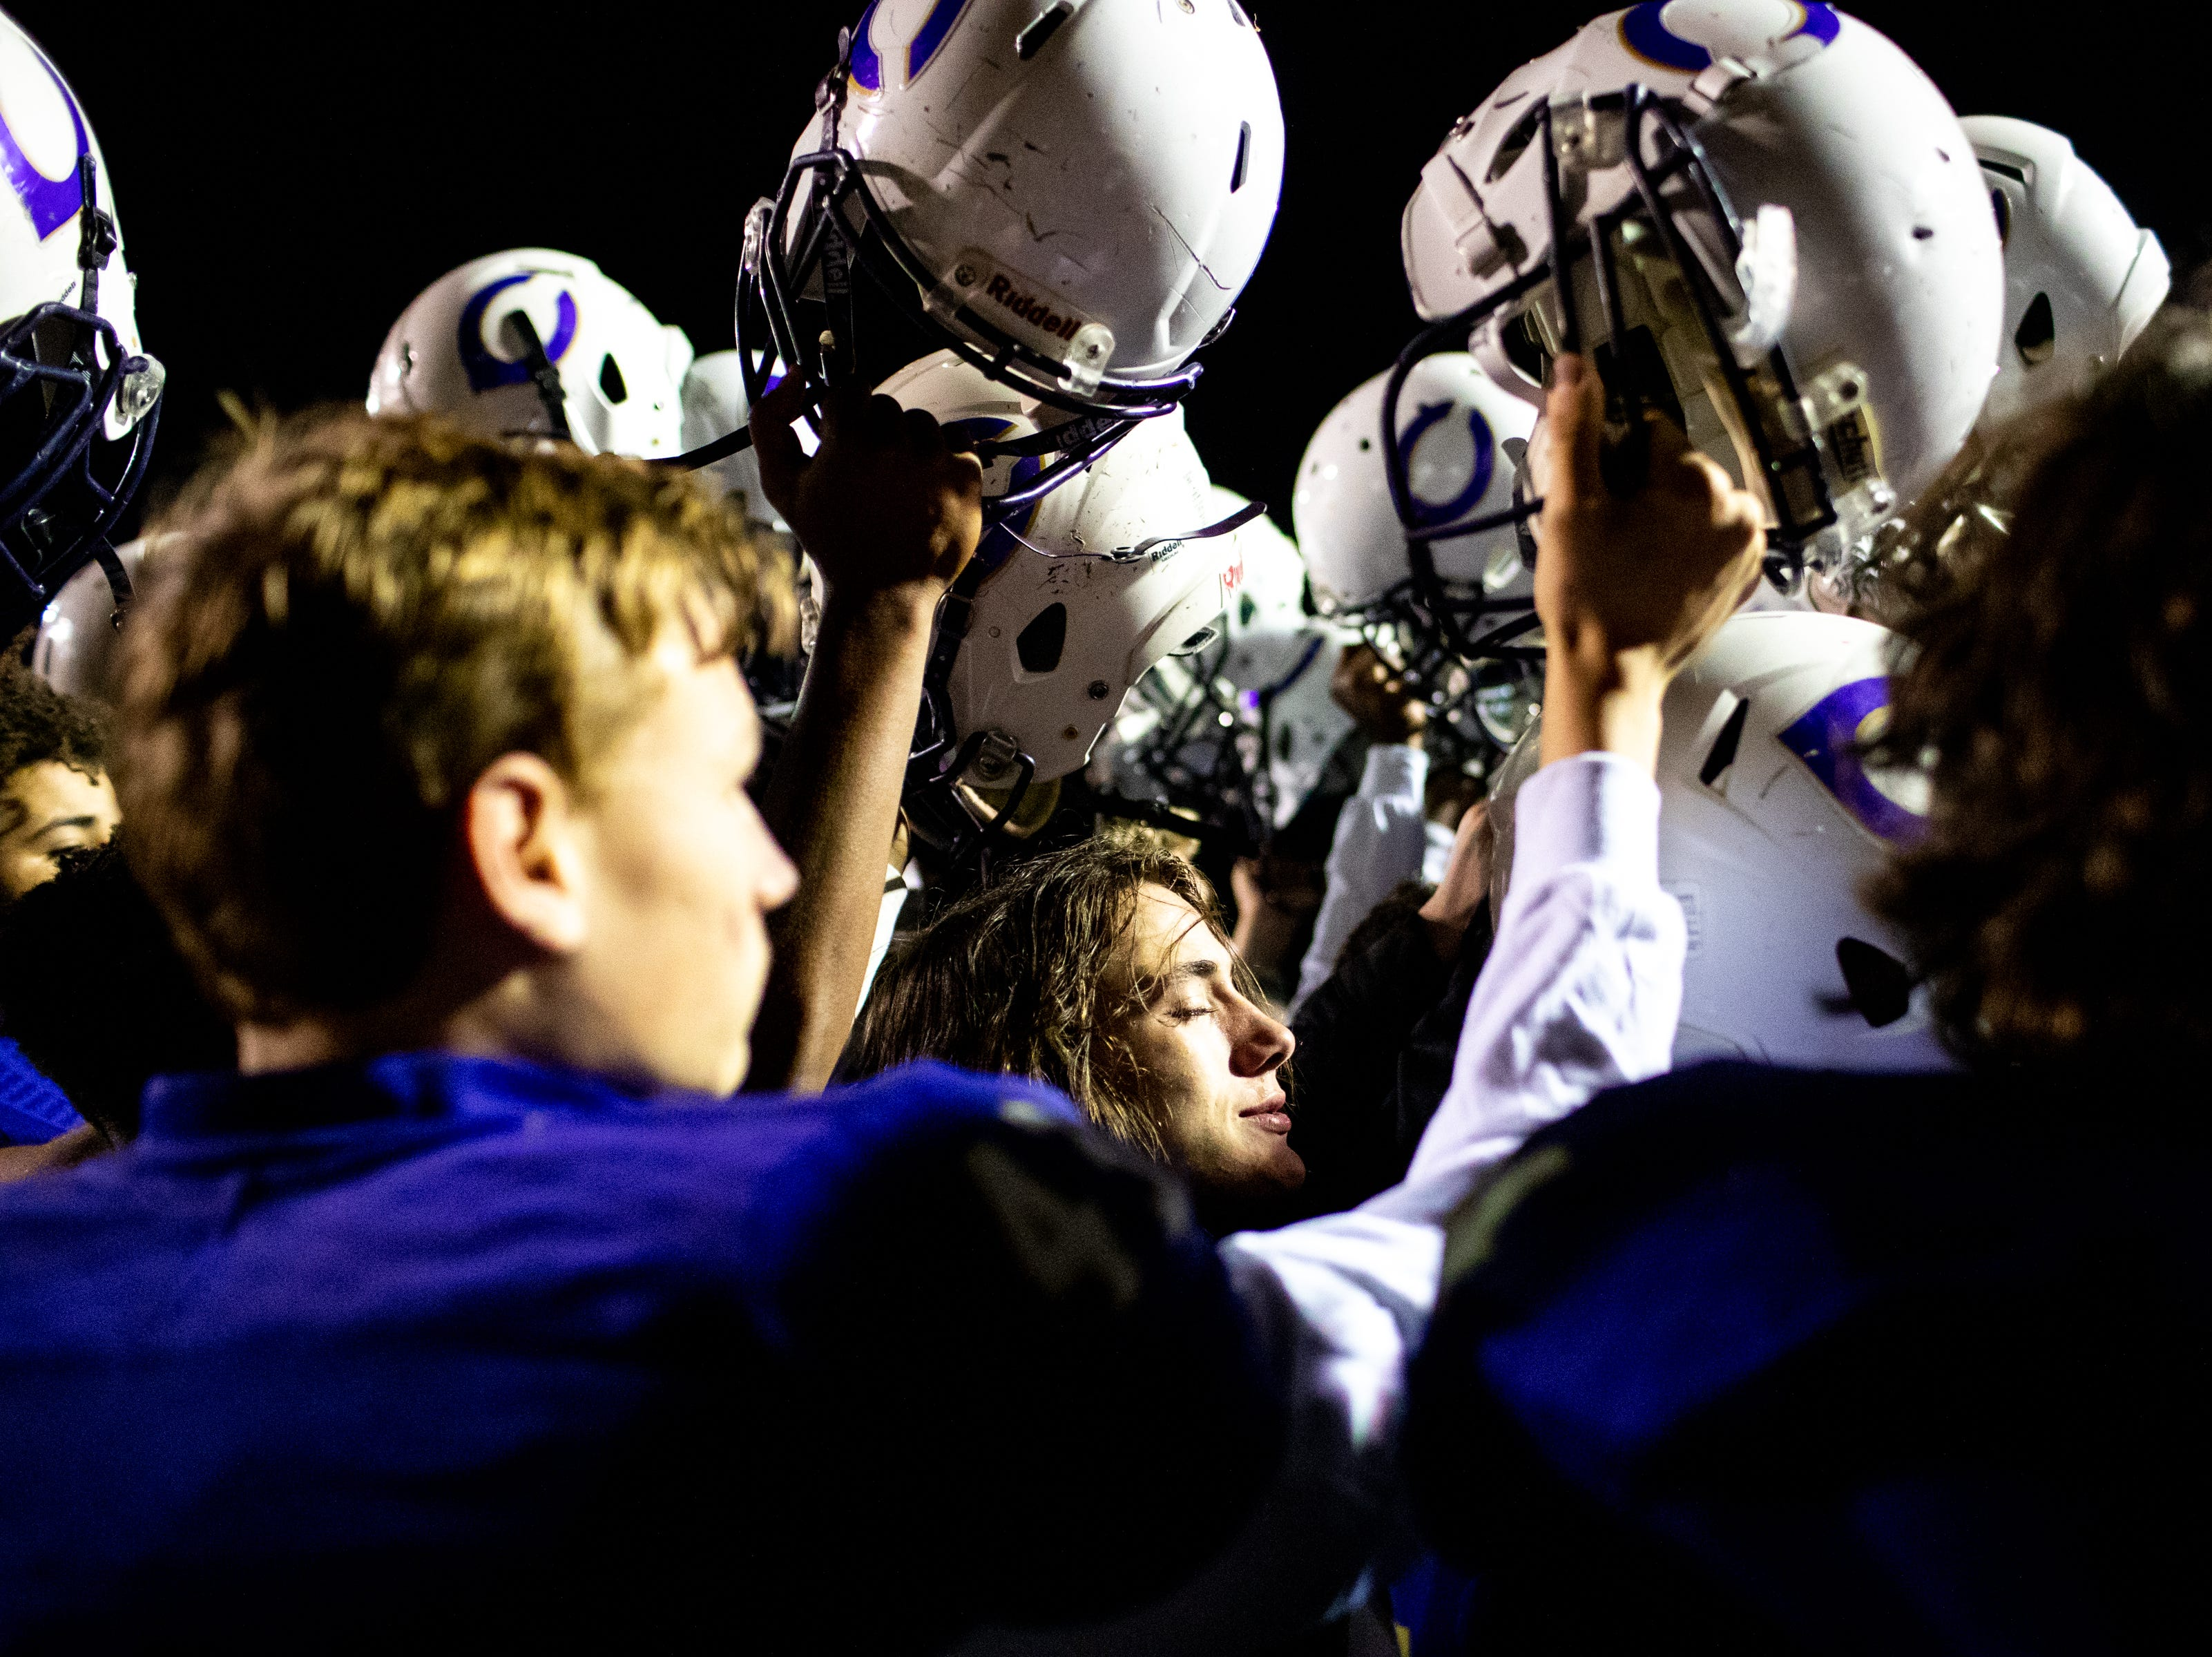 Ethan Ponder (19) lifts up his helmet one last time with his Clarksville High team after losing in overtime at Clarksville High Friday, Nov. 2, 2018, in Clarksville, Tenn.